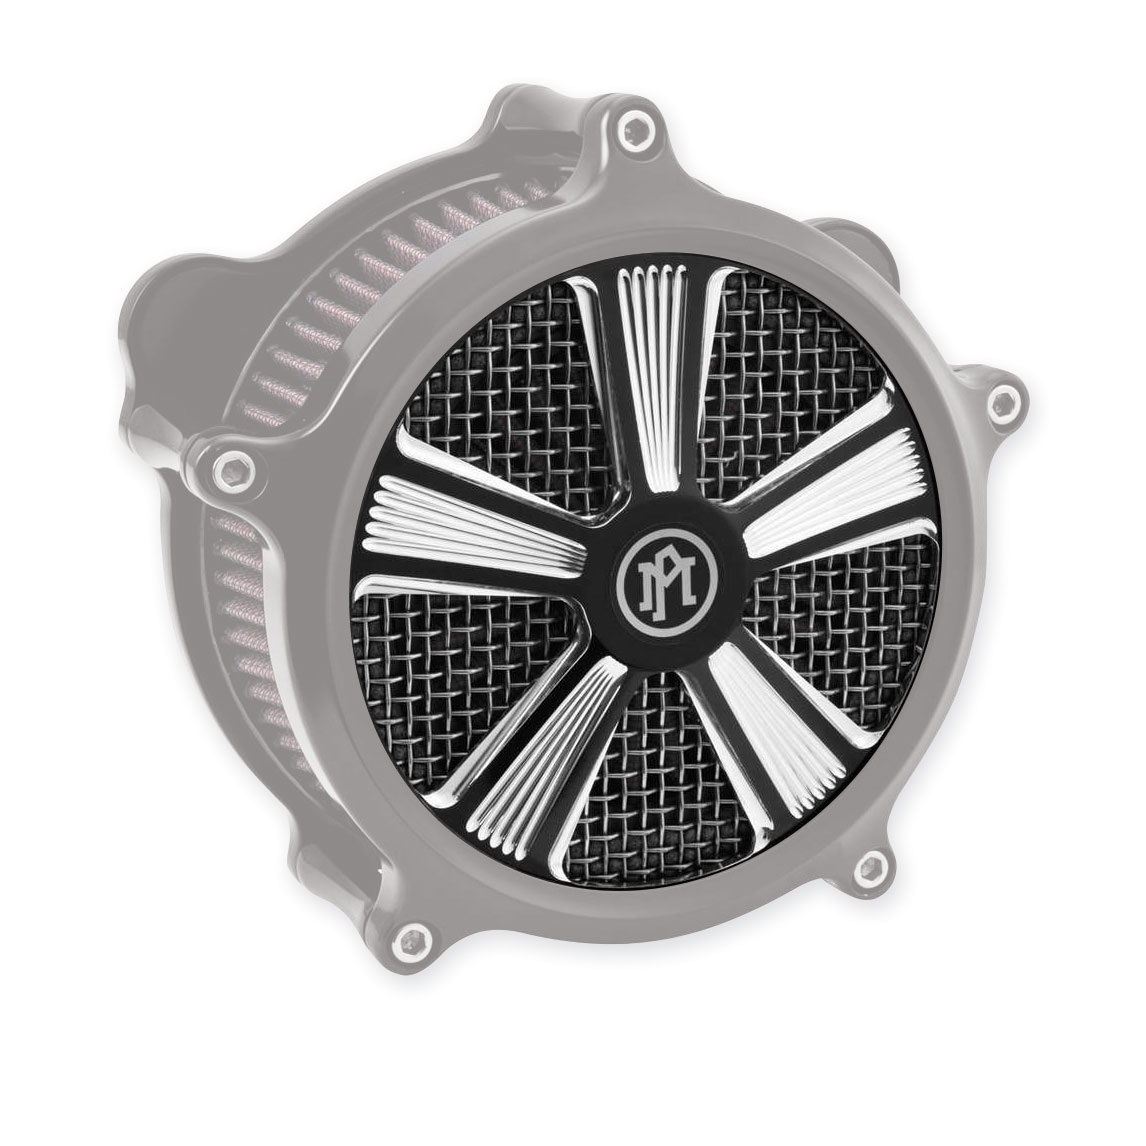 Performance Machine Shock Faceplate for Super Gas Air Cleaner Contrast Cut